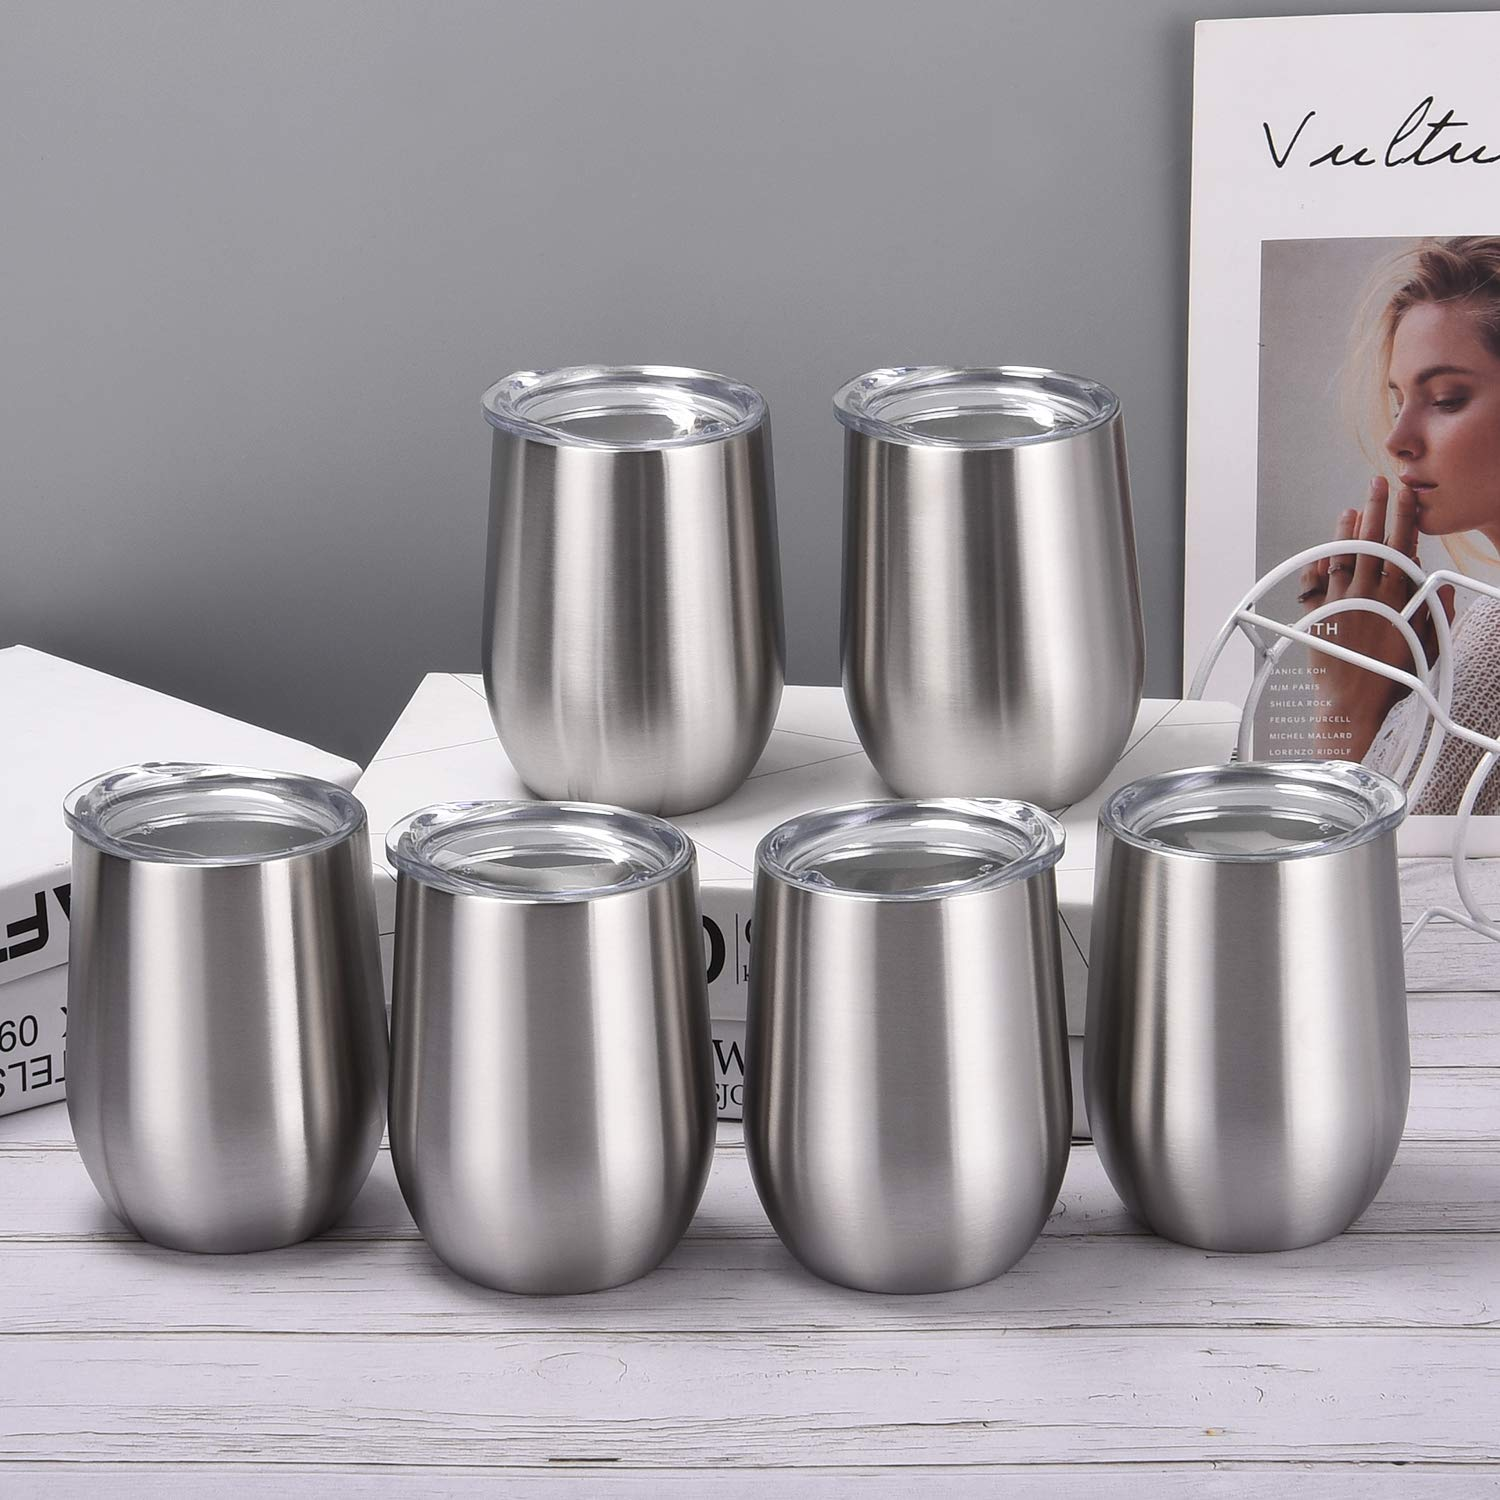 6 Pack 12Oz Stemless Wine Tumbler Wine Glasses Set Stainless Steel Cups with Lid Set of 6 for Picnic Camping Party or Family Daily Use Shatterproof - BPA Free Healthy Choice